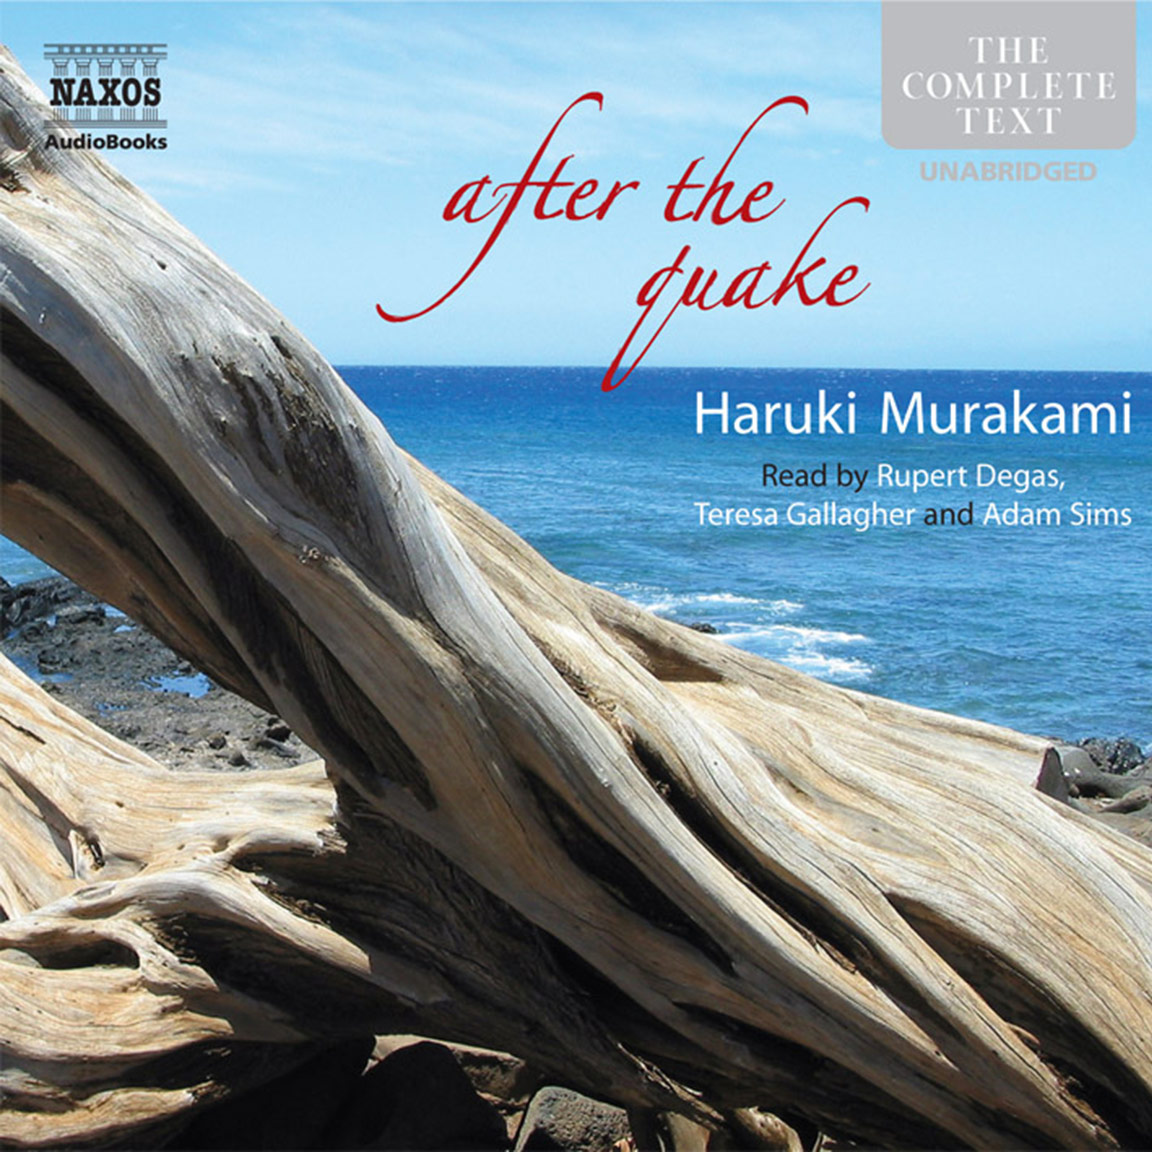 after the quake (unabridged)